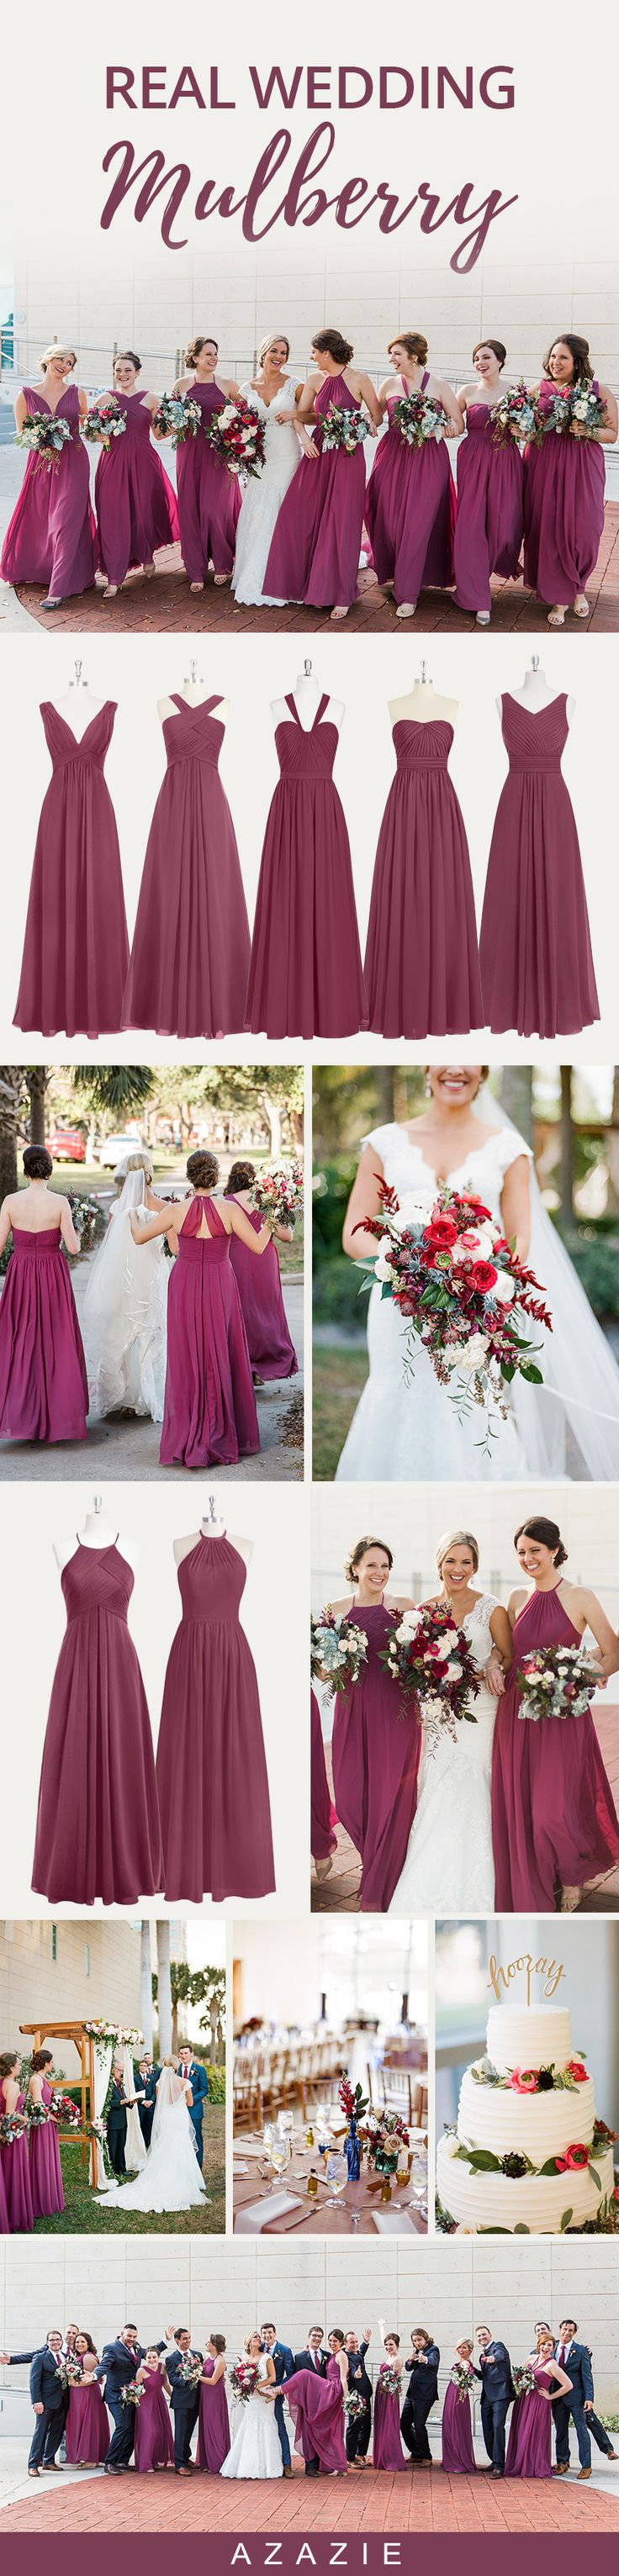 This gorgeous Mulberry shade is perfect for any bridal party! Check it out in over 100 styles at Azazie. Wedding tip: Order dress samples to try on our styles before you buy! Emily Katharine Photography; Venue: Museum of Fine Arts St Pete;Planning and coordination: Flawless Fetes;Videographer:Sunshine City Films;Hair:Denise Burkle; Makeup: Dena Miaoulis; Bridal Gown: CC's Bridal Boutique;Groom's Attire: Suit Supply; Groomsmen Attire: Josesph A Banks; Groomsmen ties: The Tie Bar;